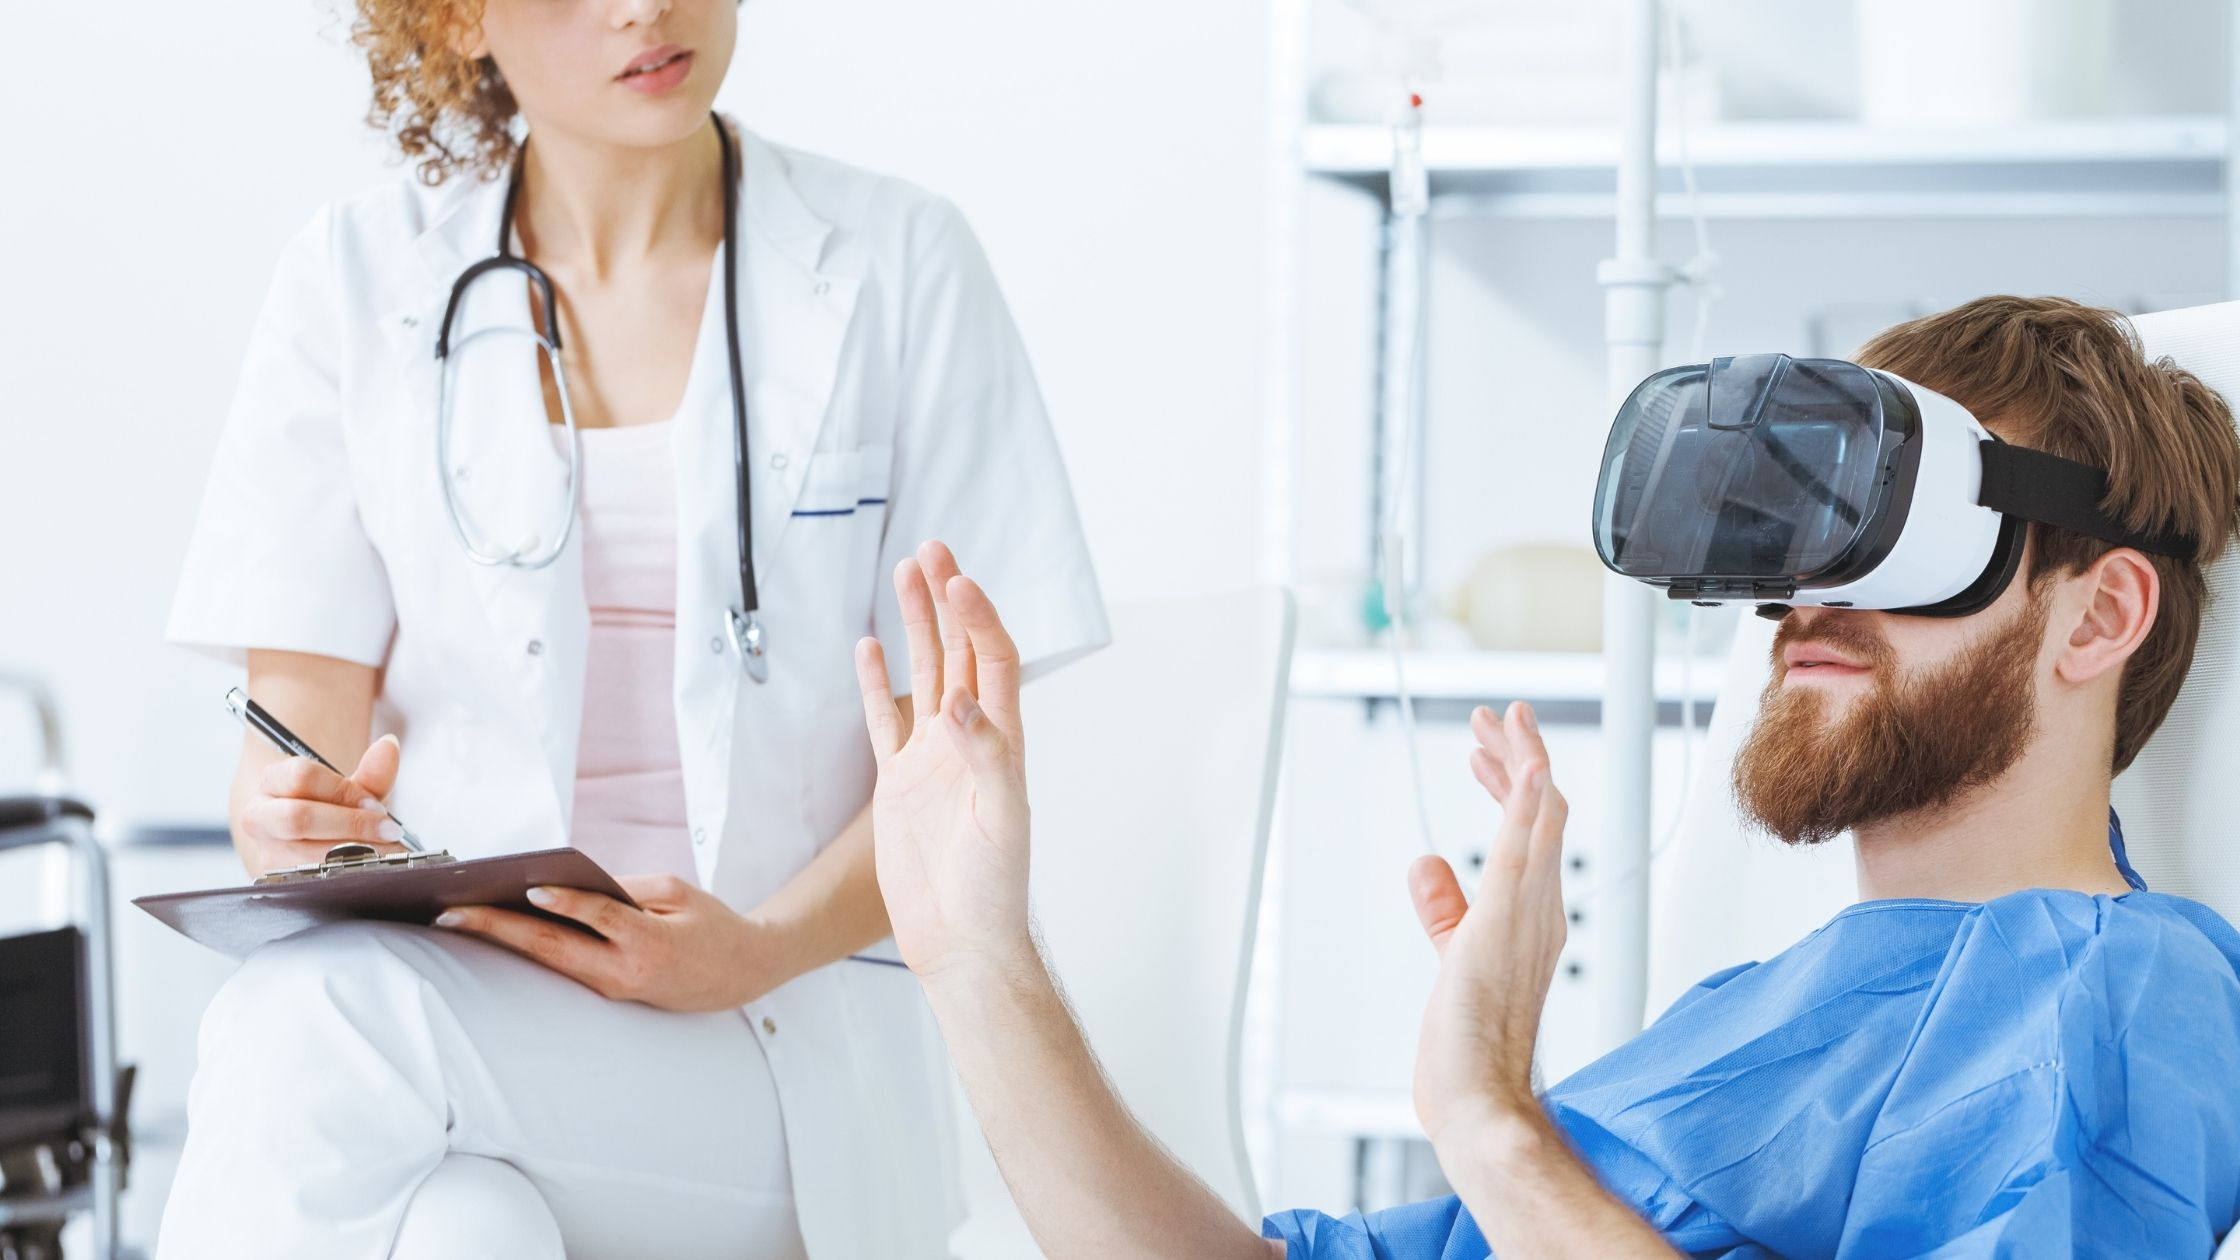 VR therapy - what is virtual reality in medicine